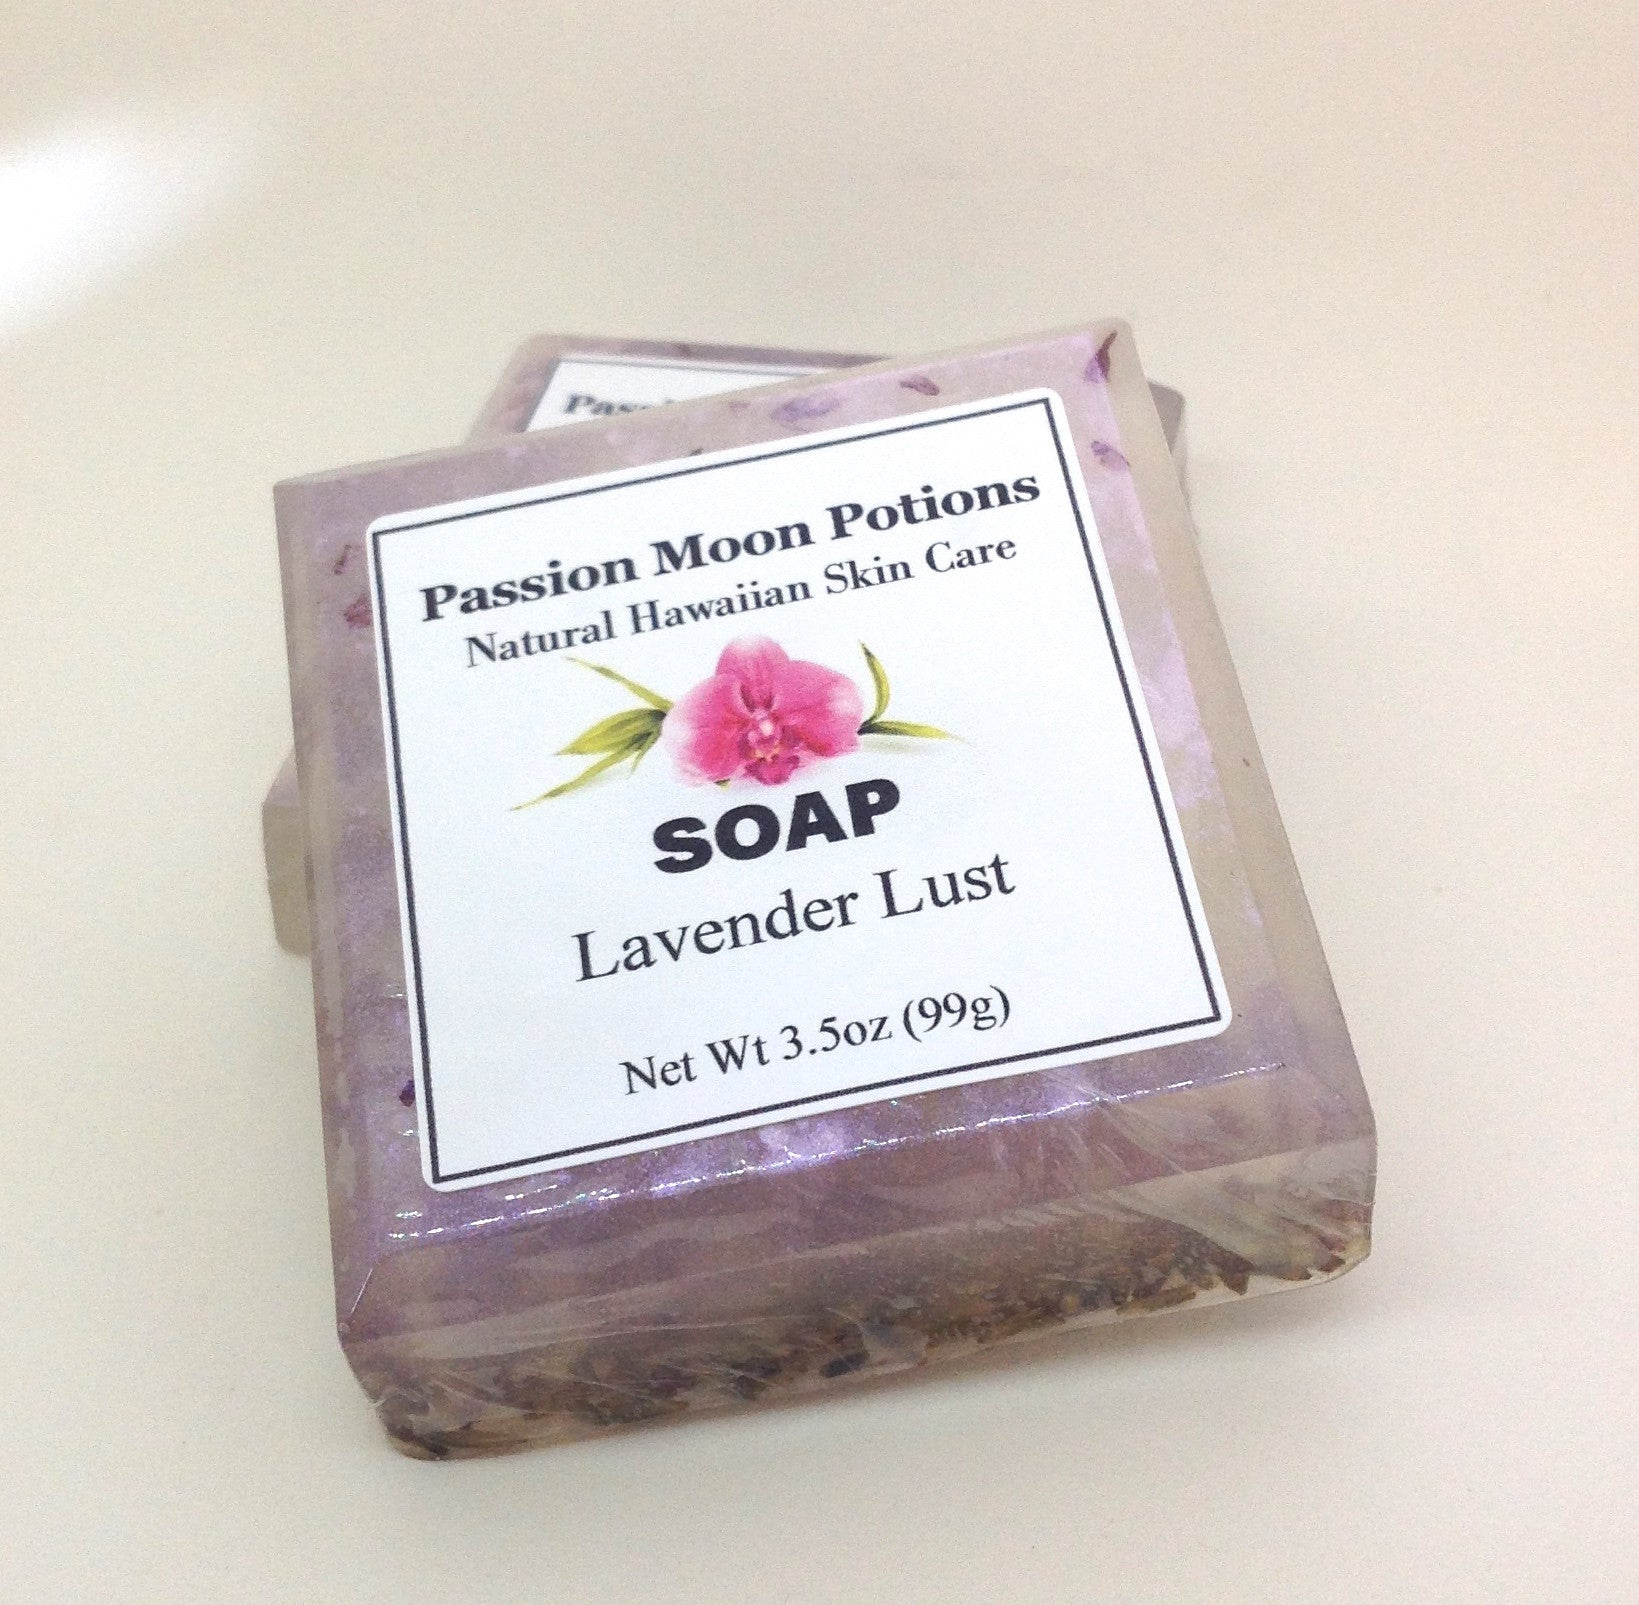 Lavender Lust Soap - Passion Moon Potions - 5